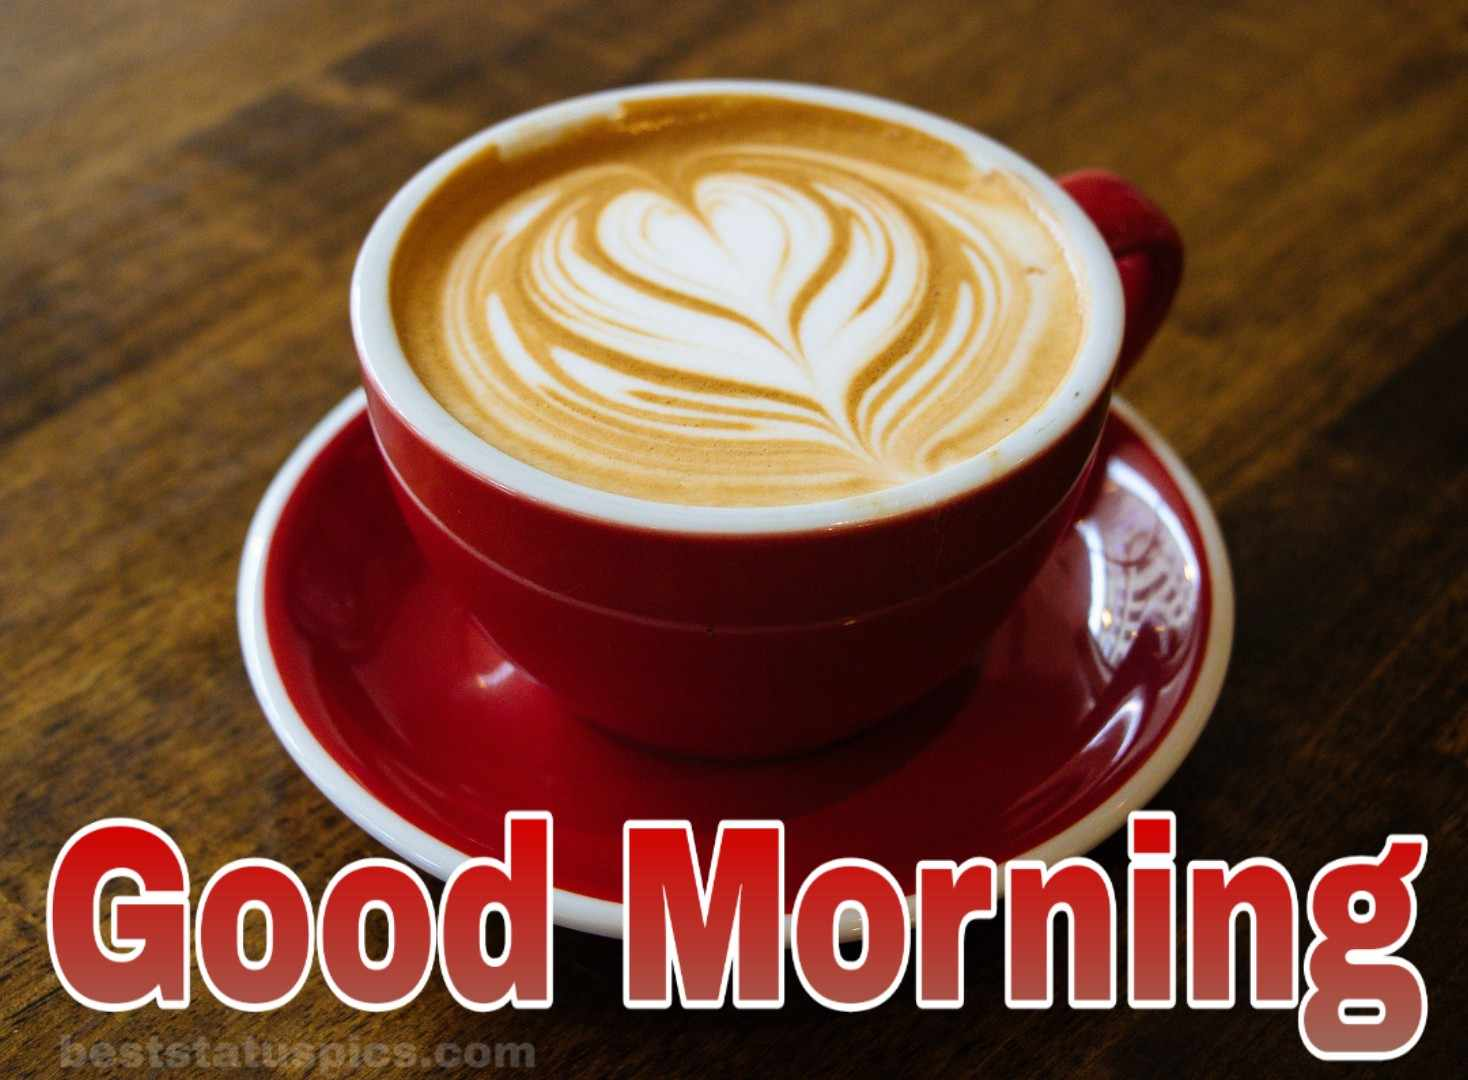 Good morning coffee cup photo with love and heart symbol